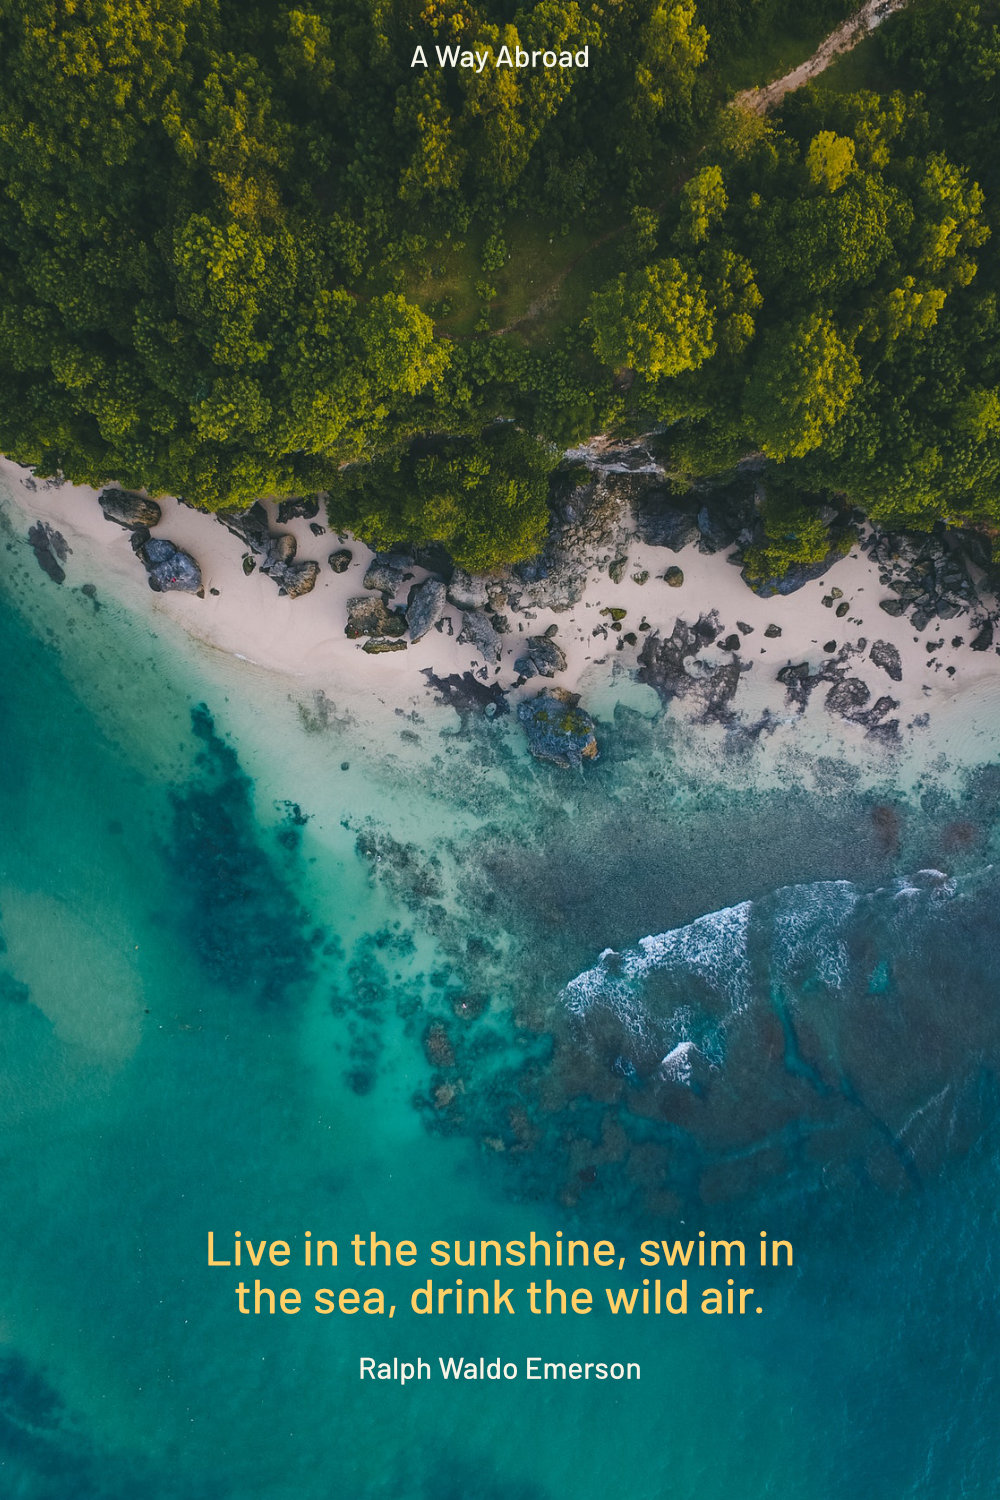 drone picture of a rocky coast covered in trees with a ralph waldo emerson quote